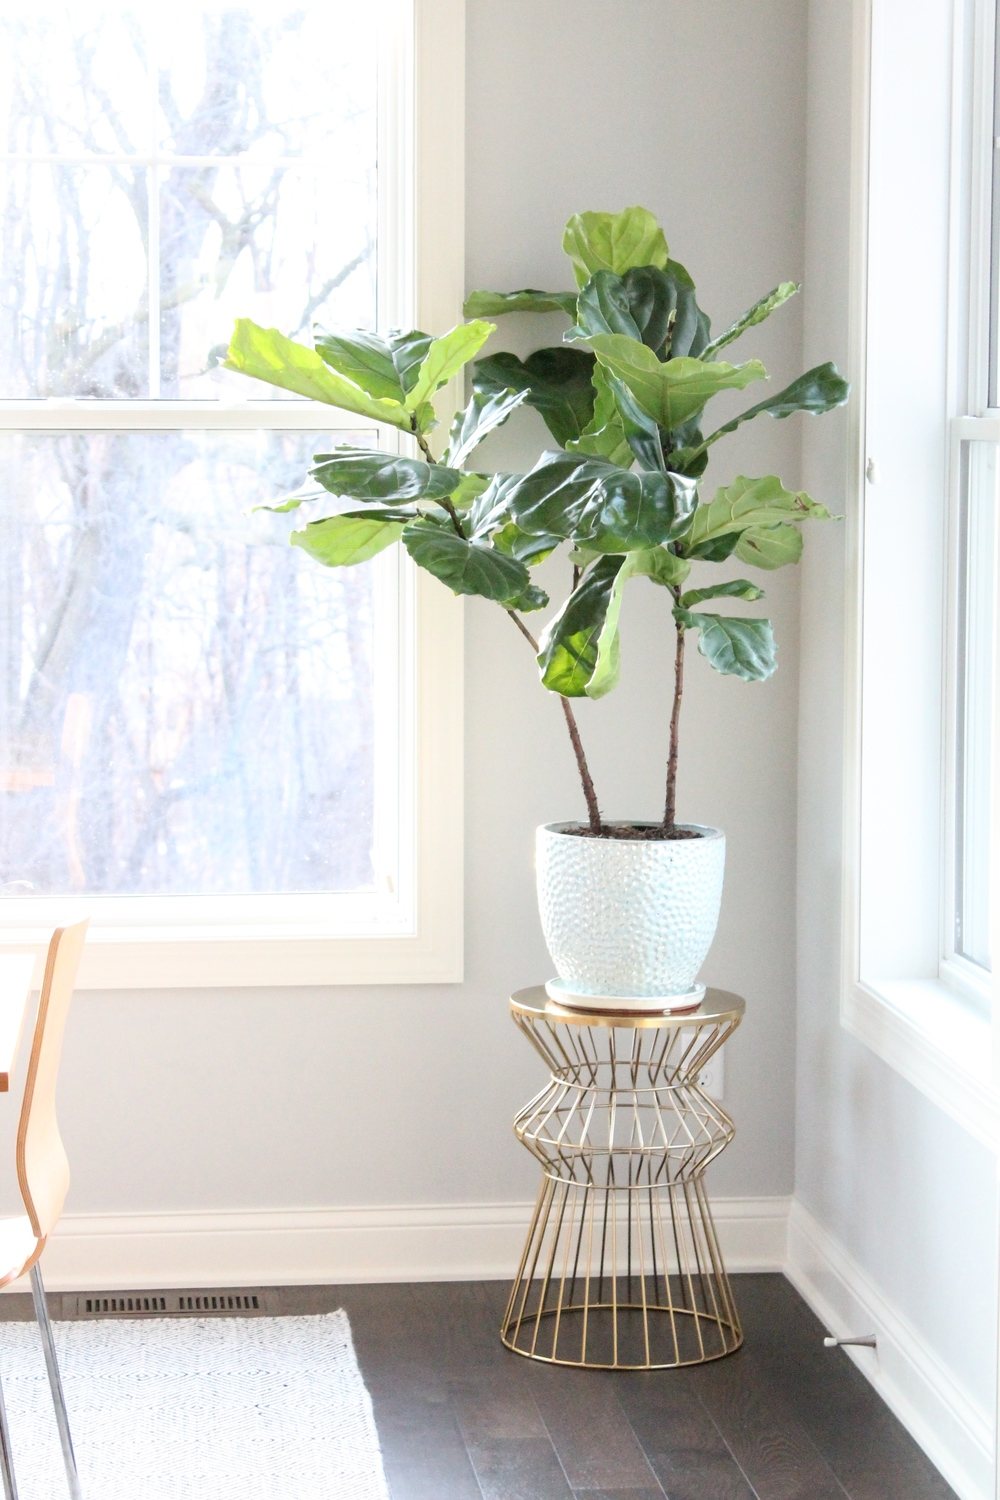 Fiddly Fig plant on Gold plant stand. I love the life that it adds to this sunny breakfast nook.